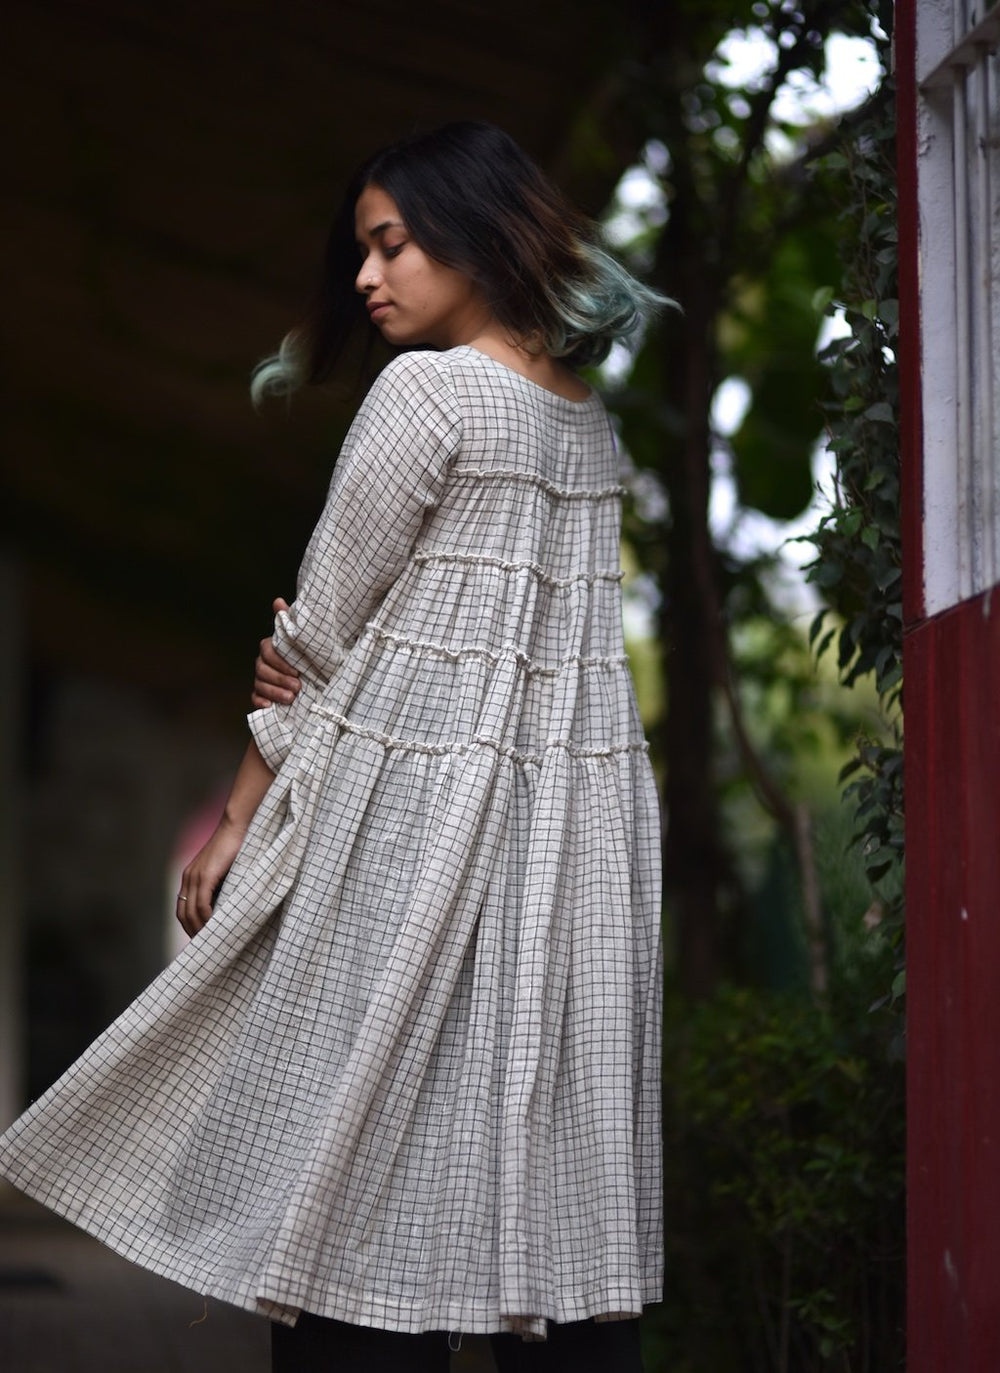 Philomena, Organic Cotton Flared Dress with Hand Embroidery + Grey Pants in Cotton, Handmade - kinchecom